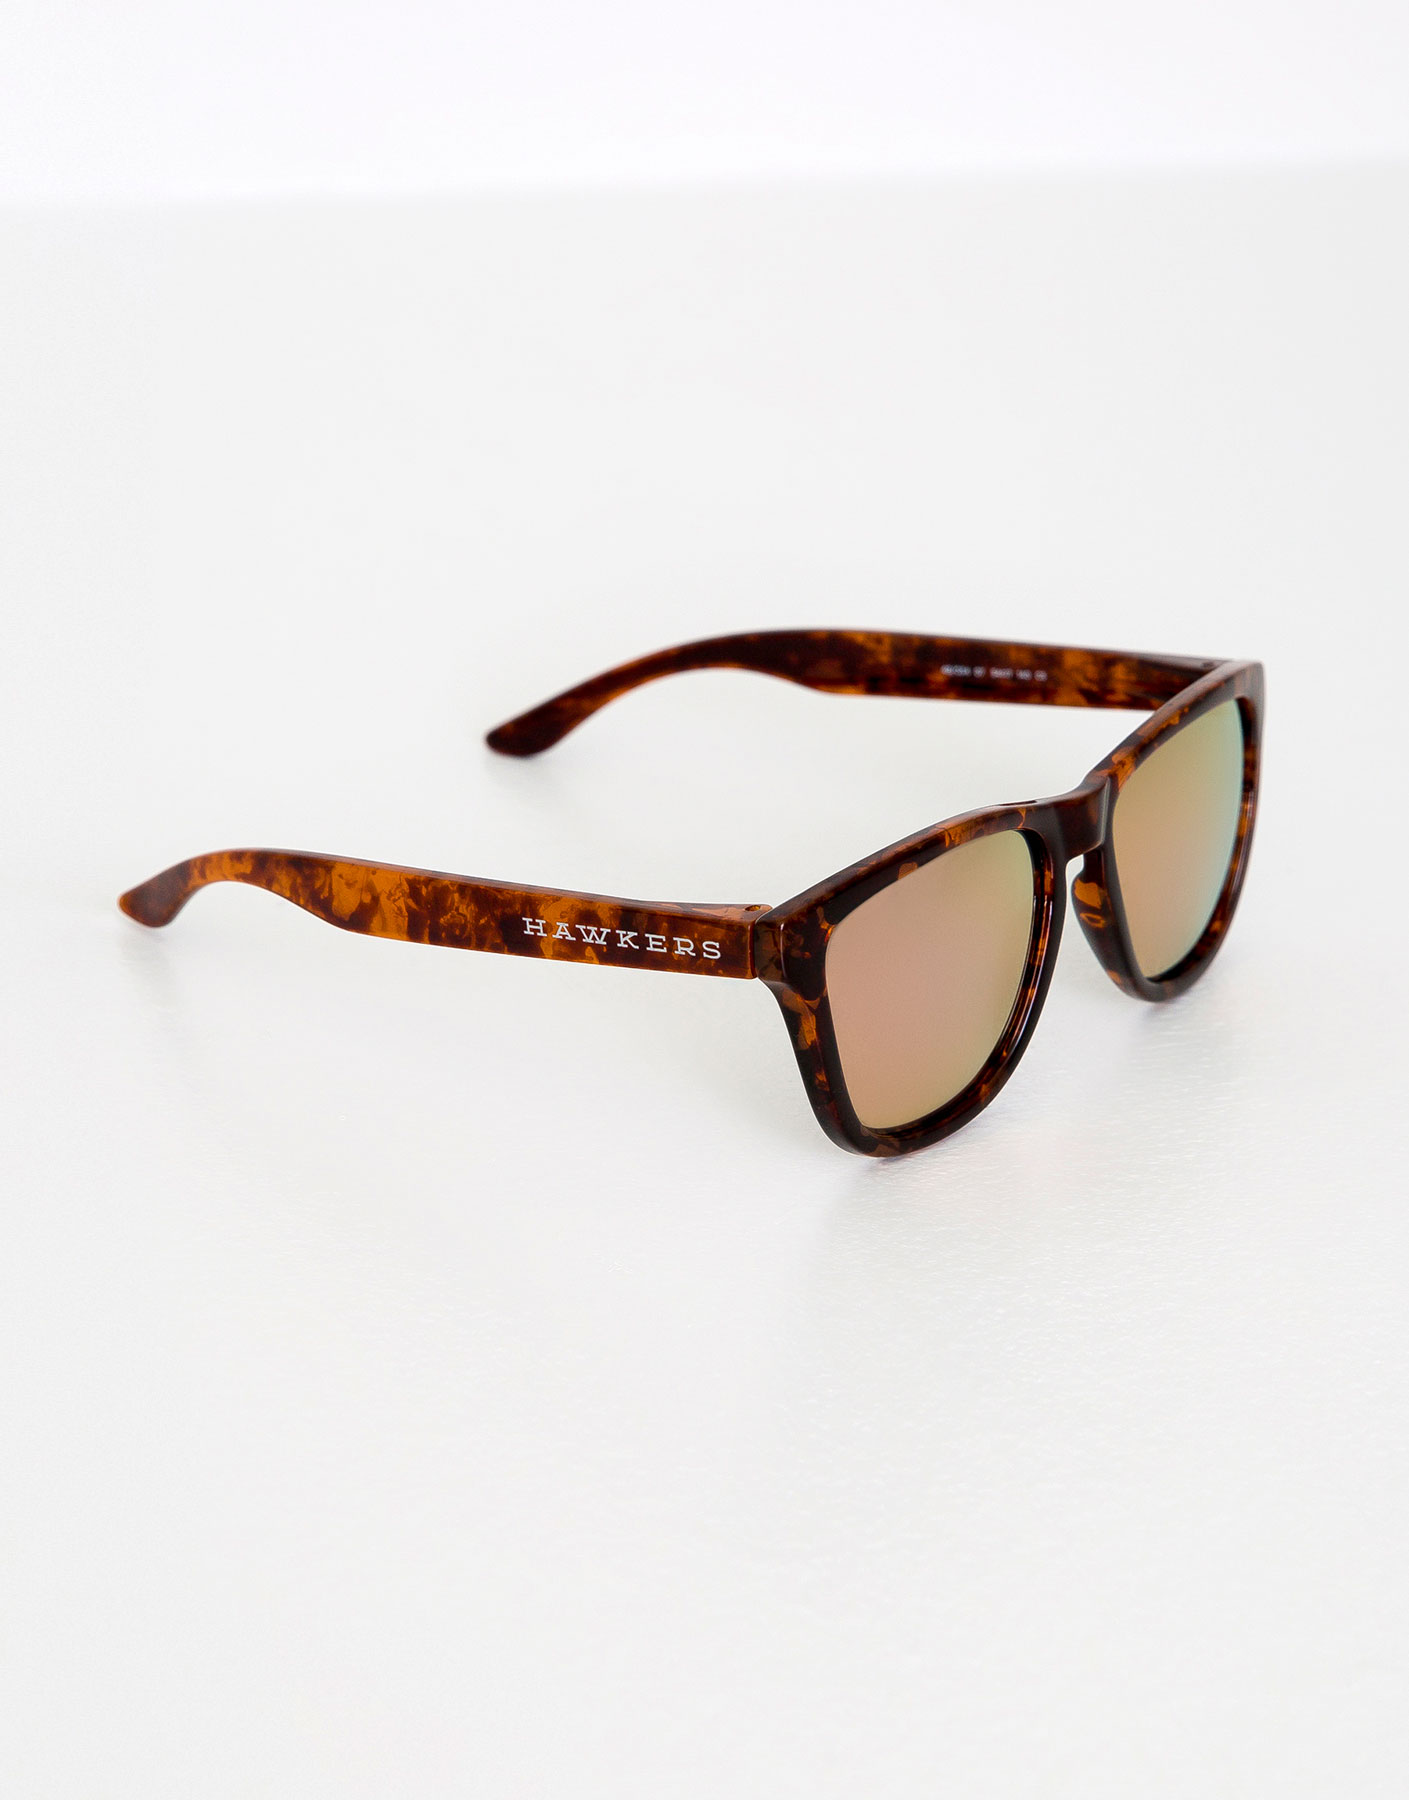 Hawkers tortoiseshell rose gold one sunglasses